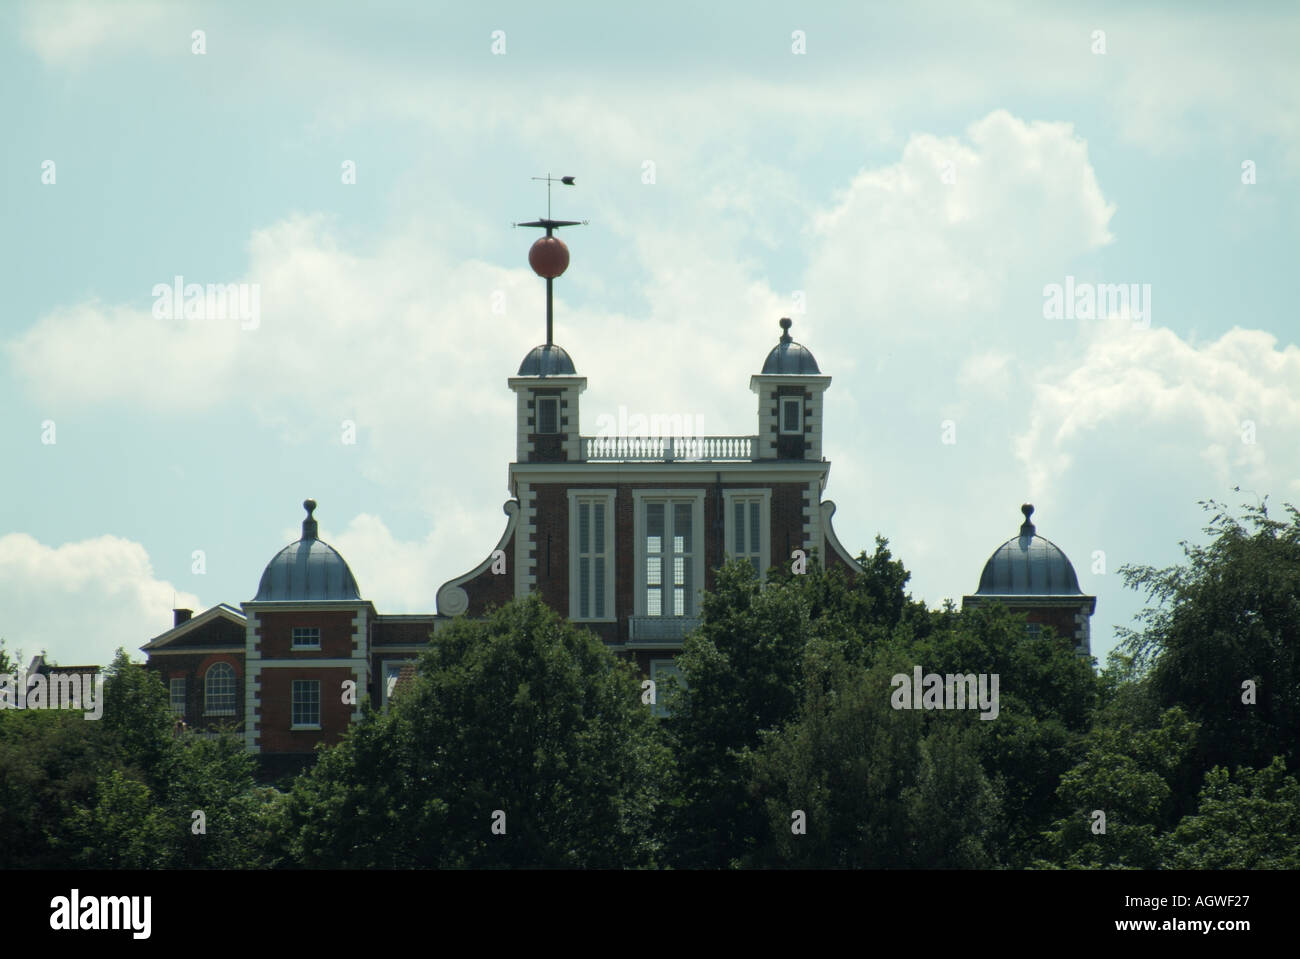 Greenwich Observatory raised Time Ball above Flamstead House used to provide signal to ships to check marine chronometers - Stock Image